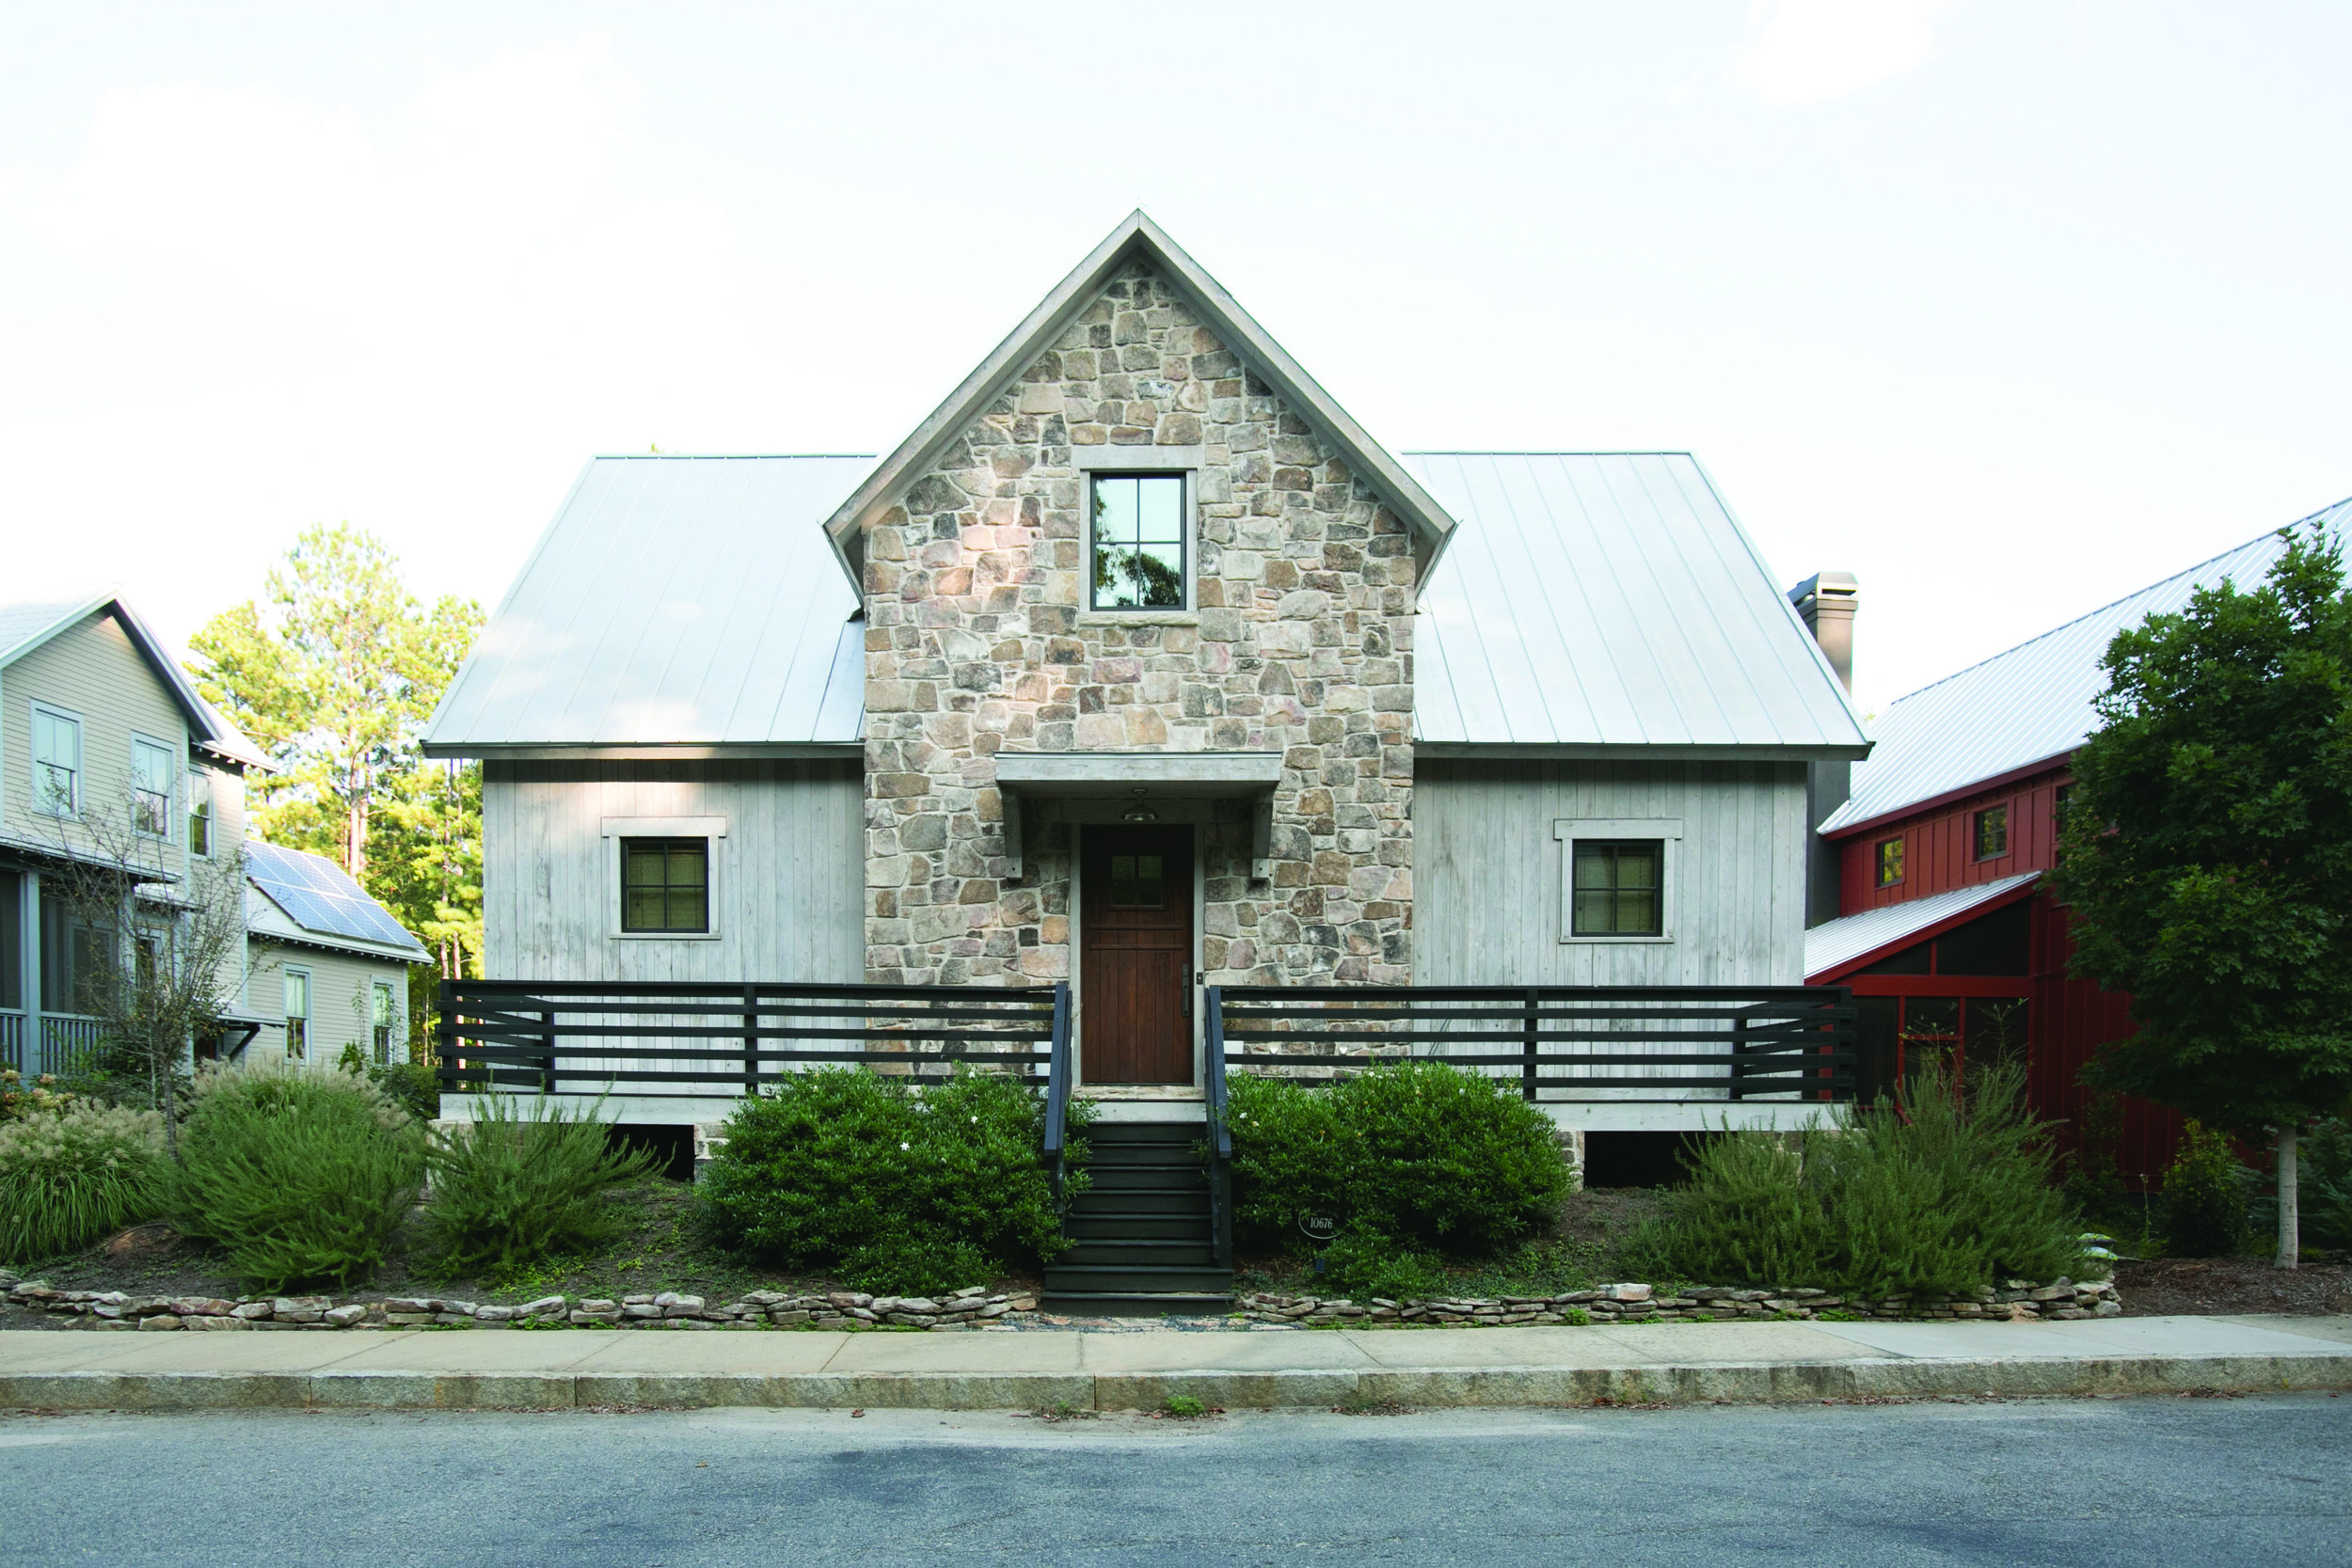 - In This Modern Farmhouse, The Writing's On The Wall